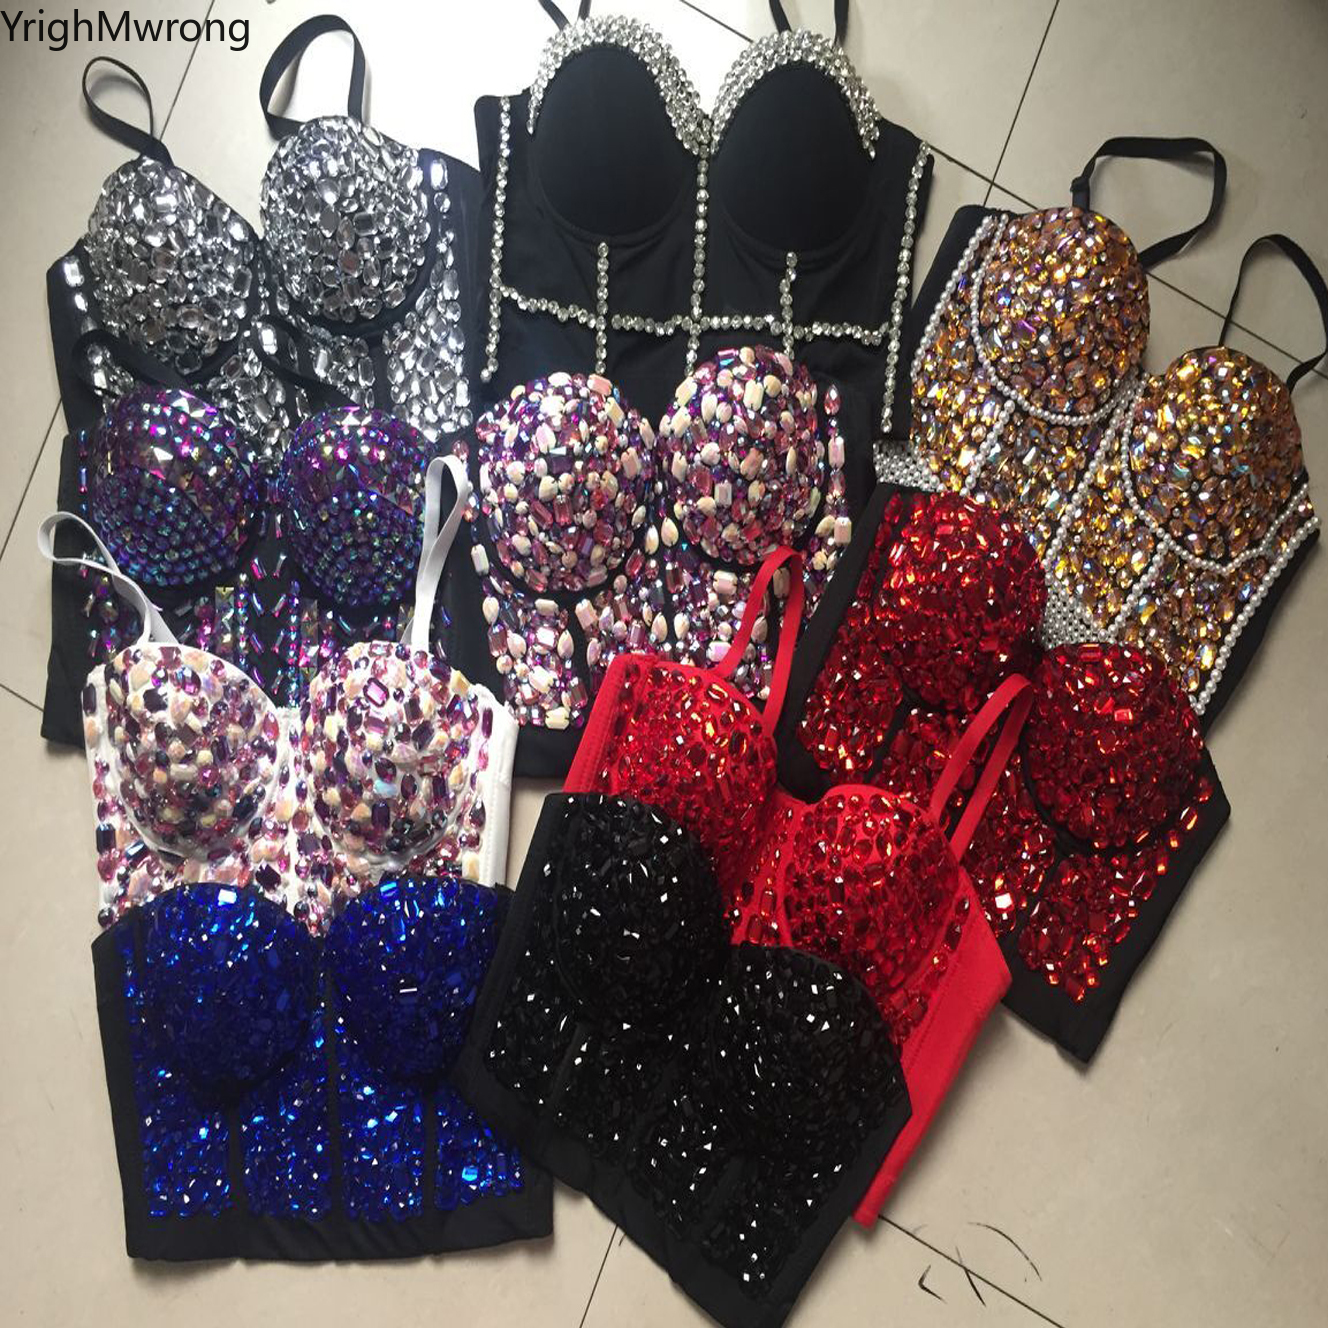 Blig Bling Rainbow Mermaid Crystal Rhinestone Beading Diamond Embroidered Jeweled Pearl Push Up Bustier Crop Top Cropped Vest Лосины